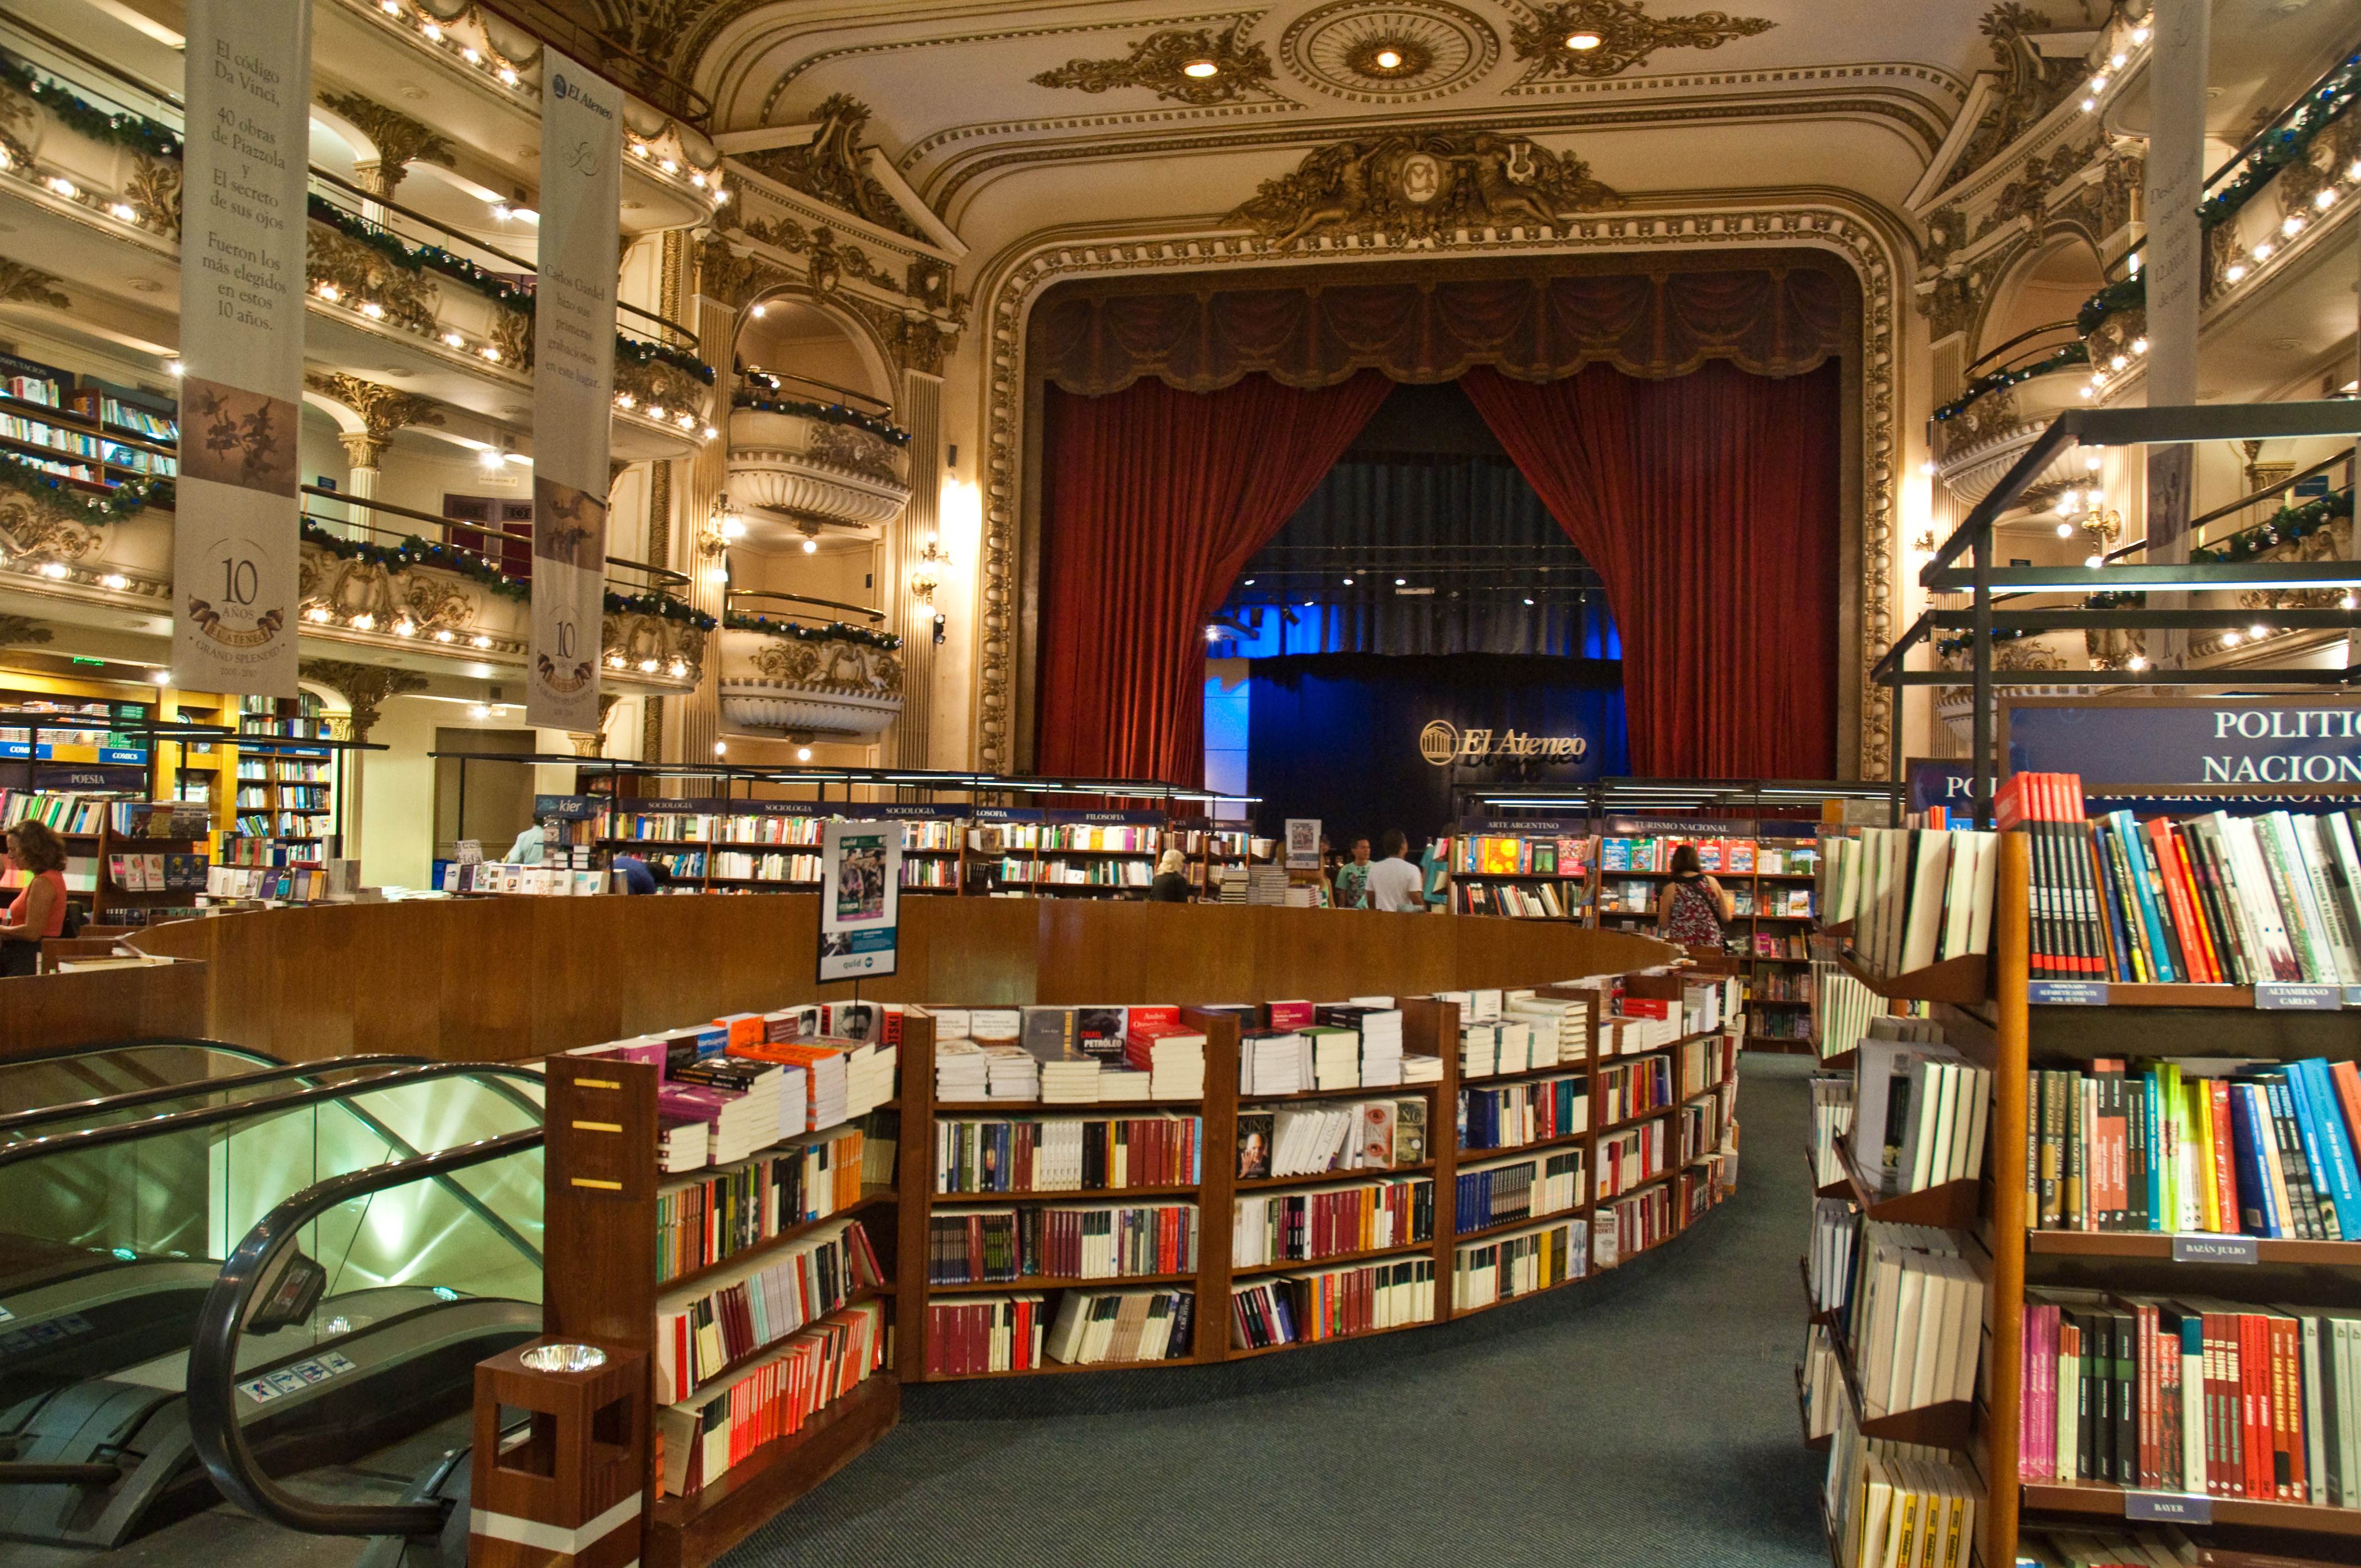 El_Ateneo_Grand_Splendid_Bookshop,_Recoleta,_Buenos_Aires,_Argentina,_28th._Dec._2010_-_Flickr_-_Phi